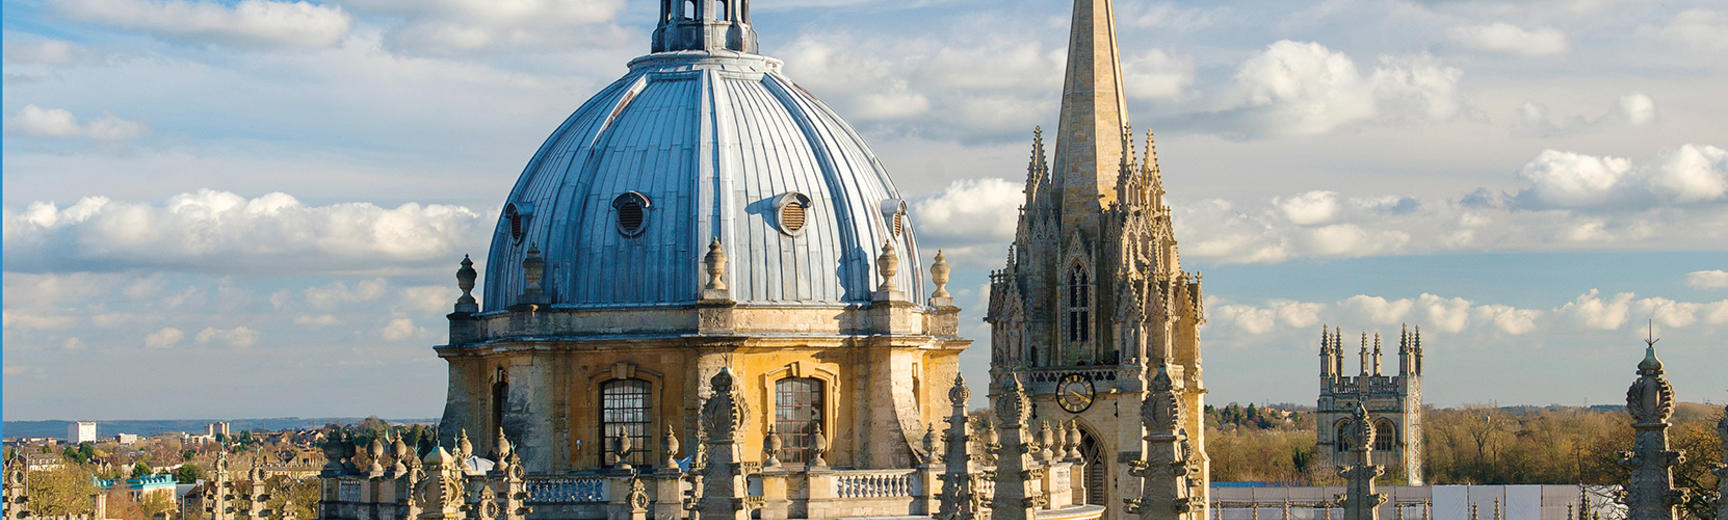 View of Radcliffe Camera skyline